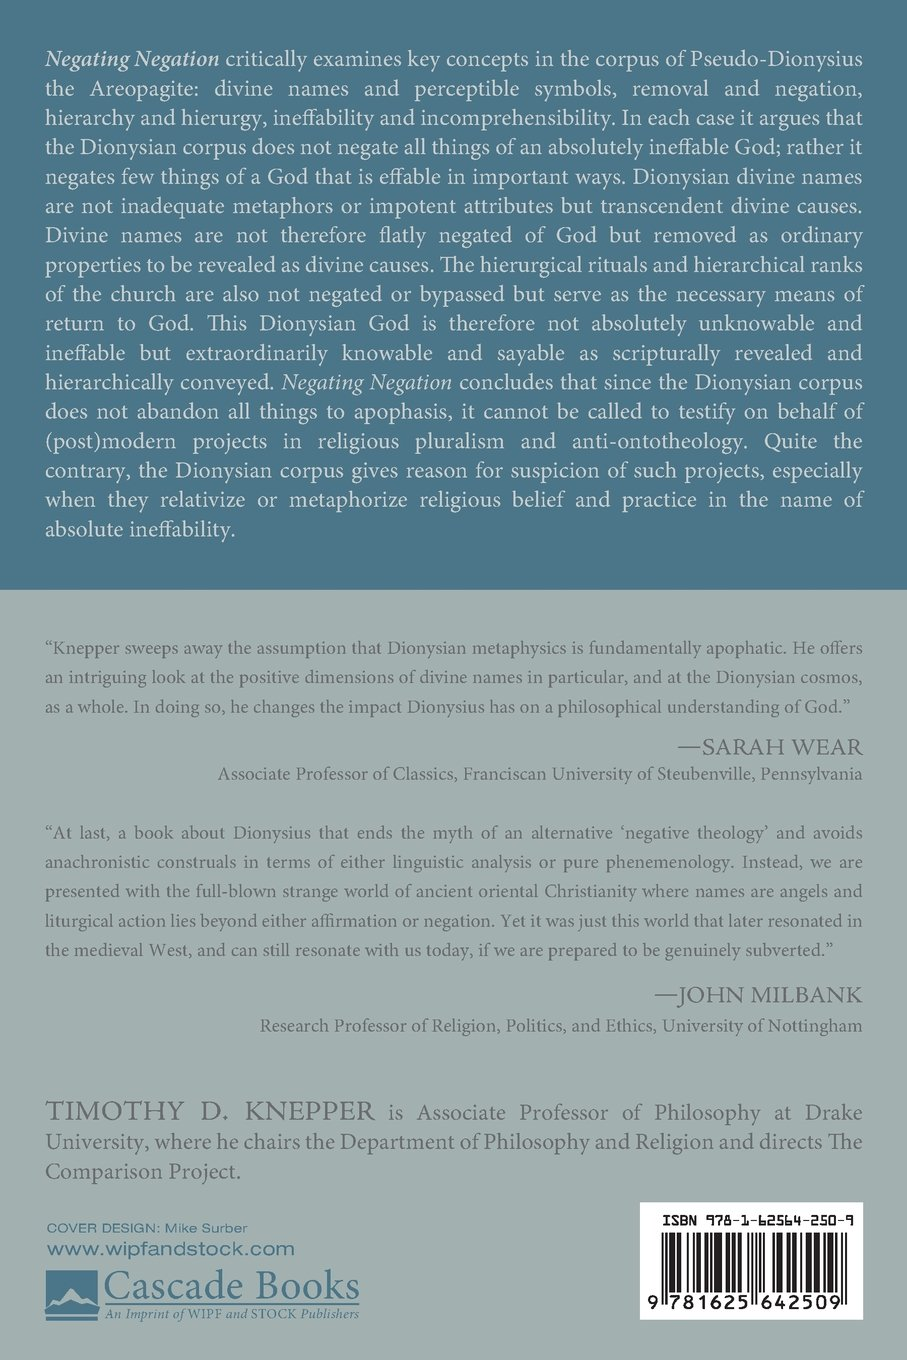 Negating Negation: Against the Apophatic Abandonment of the ...